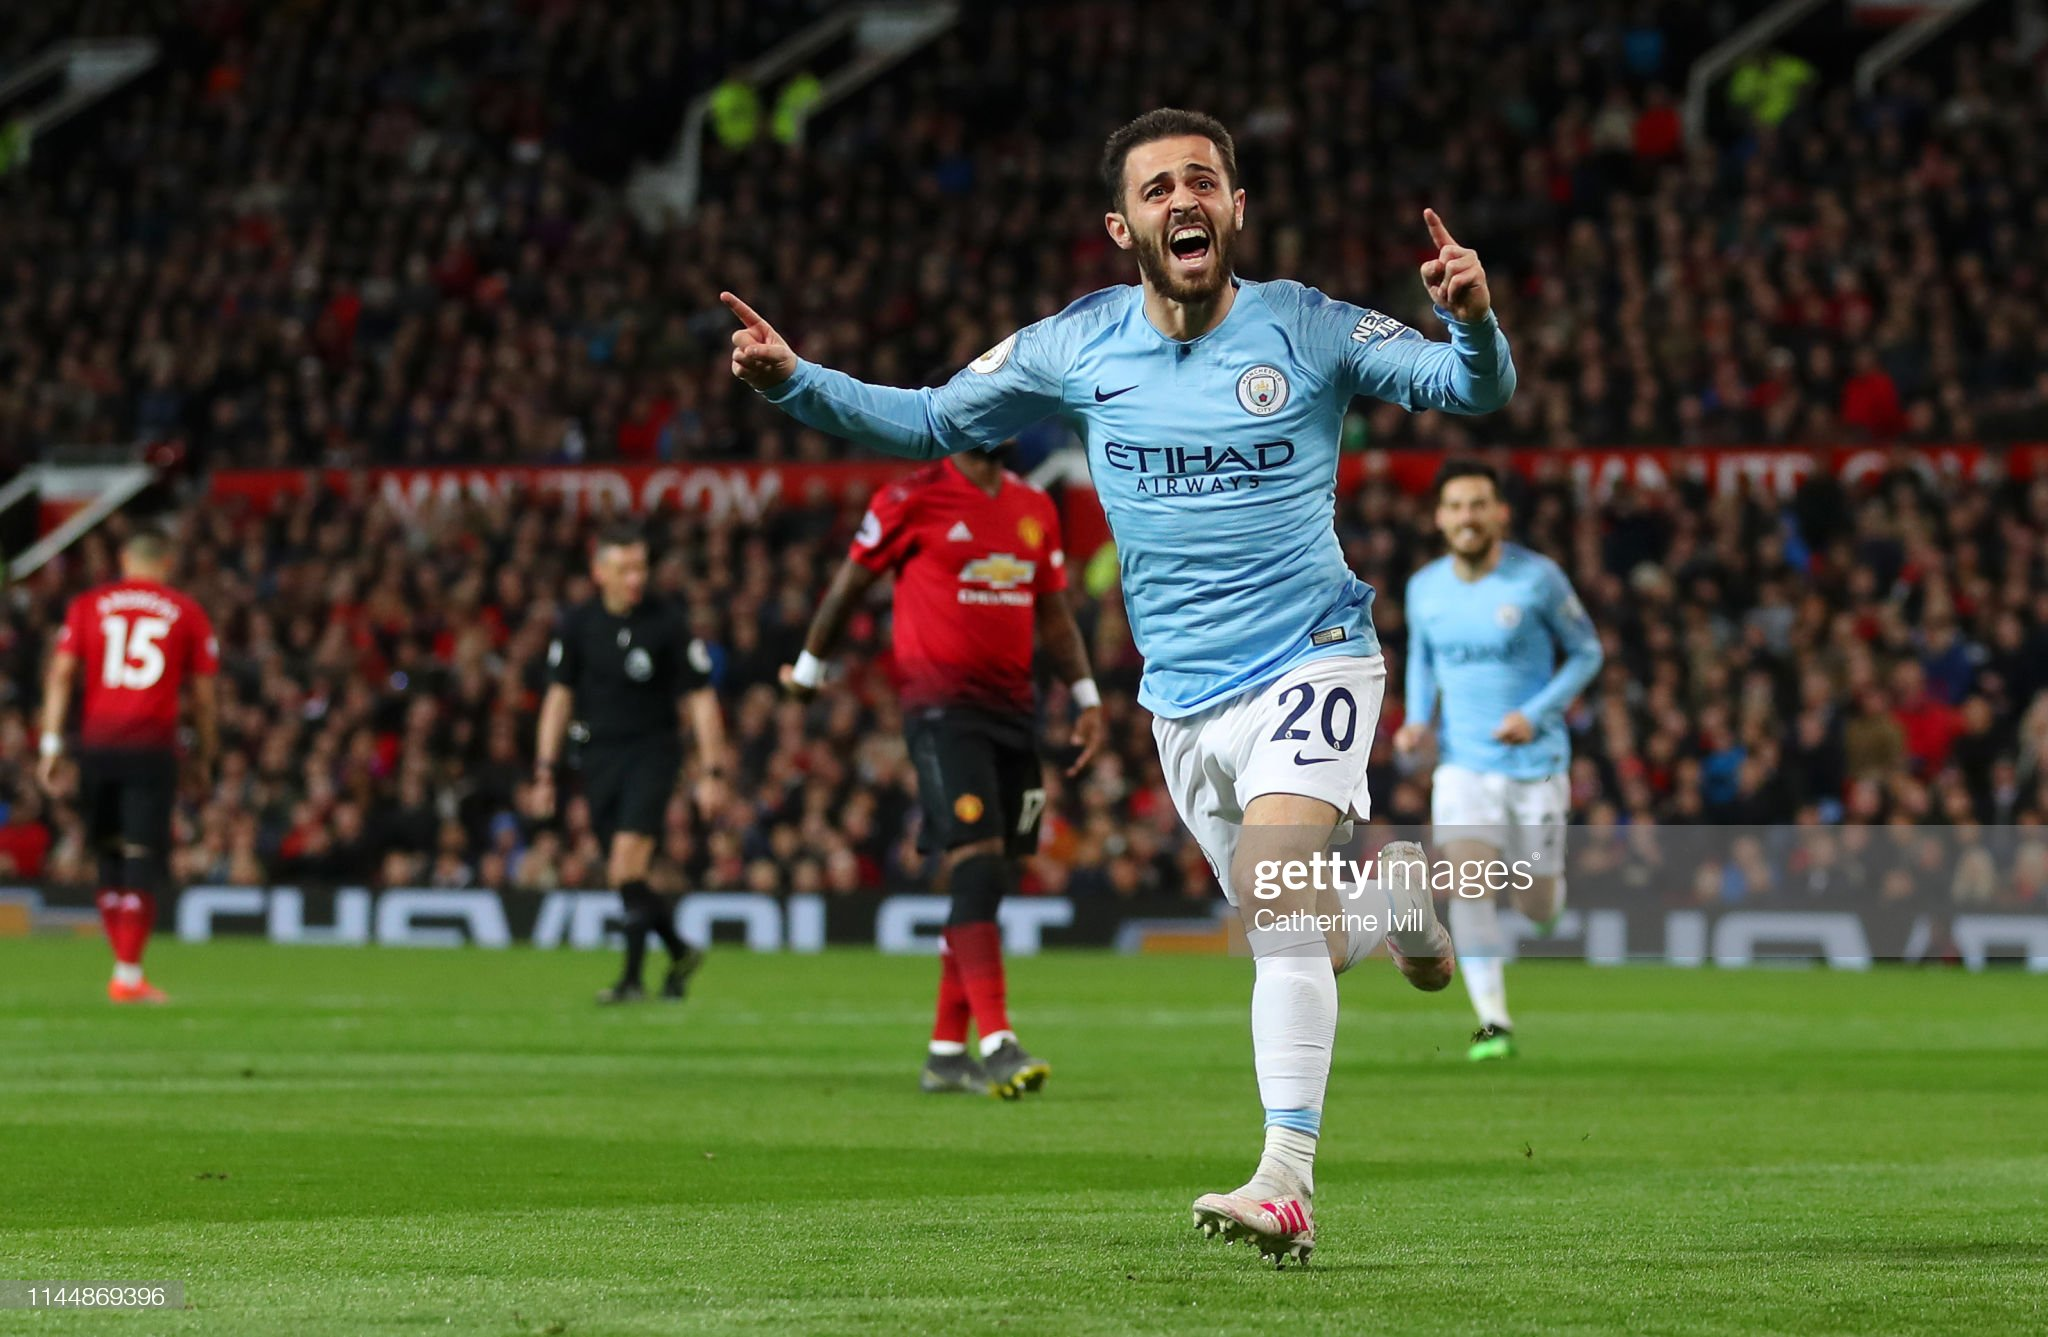 https://media.gettyimages.com/photos/bernardo-silva-of-manchester-city-celebrates-after-scoring-his-teams-picture-id1144869396?s=2048x2048